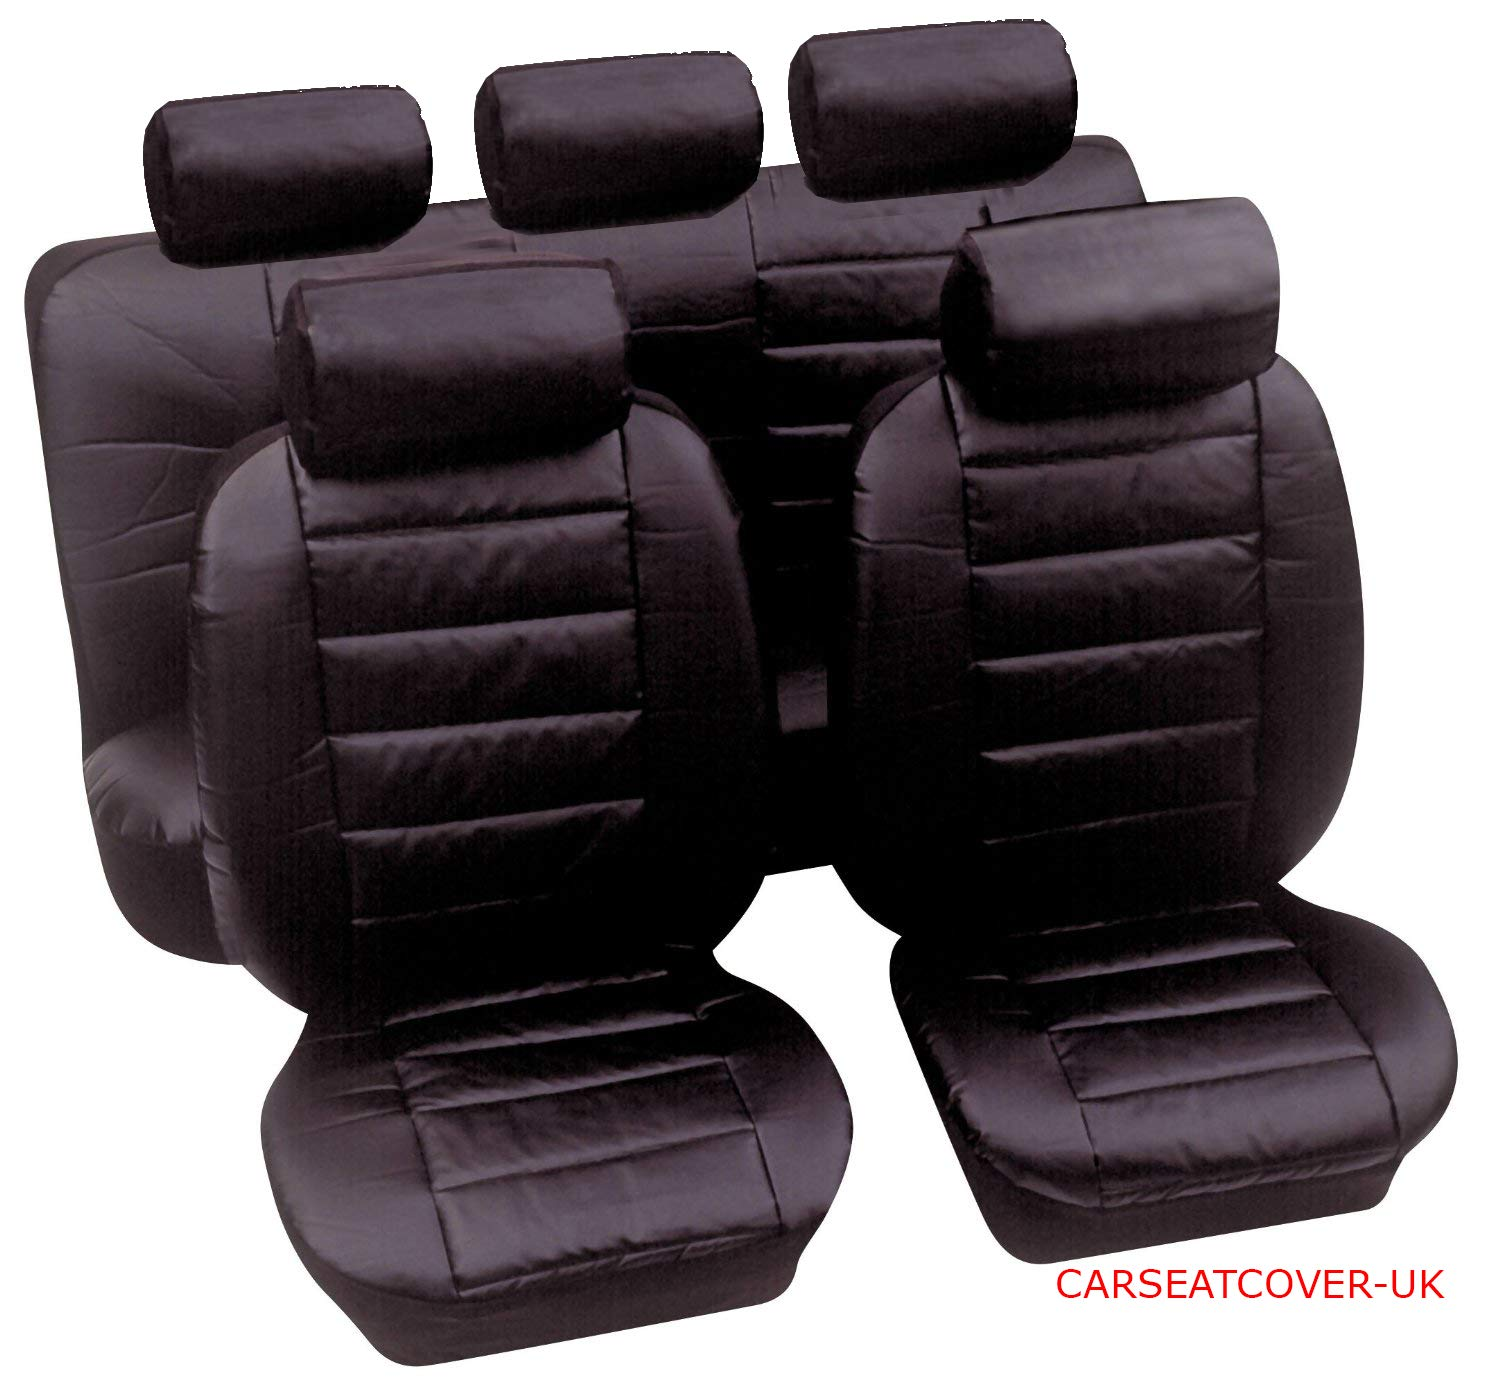 Carseatcover-UK Black Leatherette Car Seat Covers Full Set